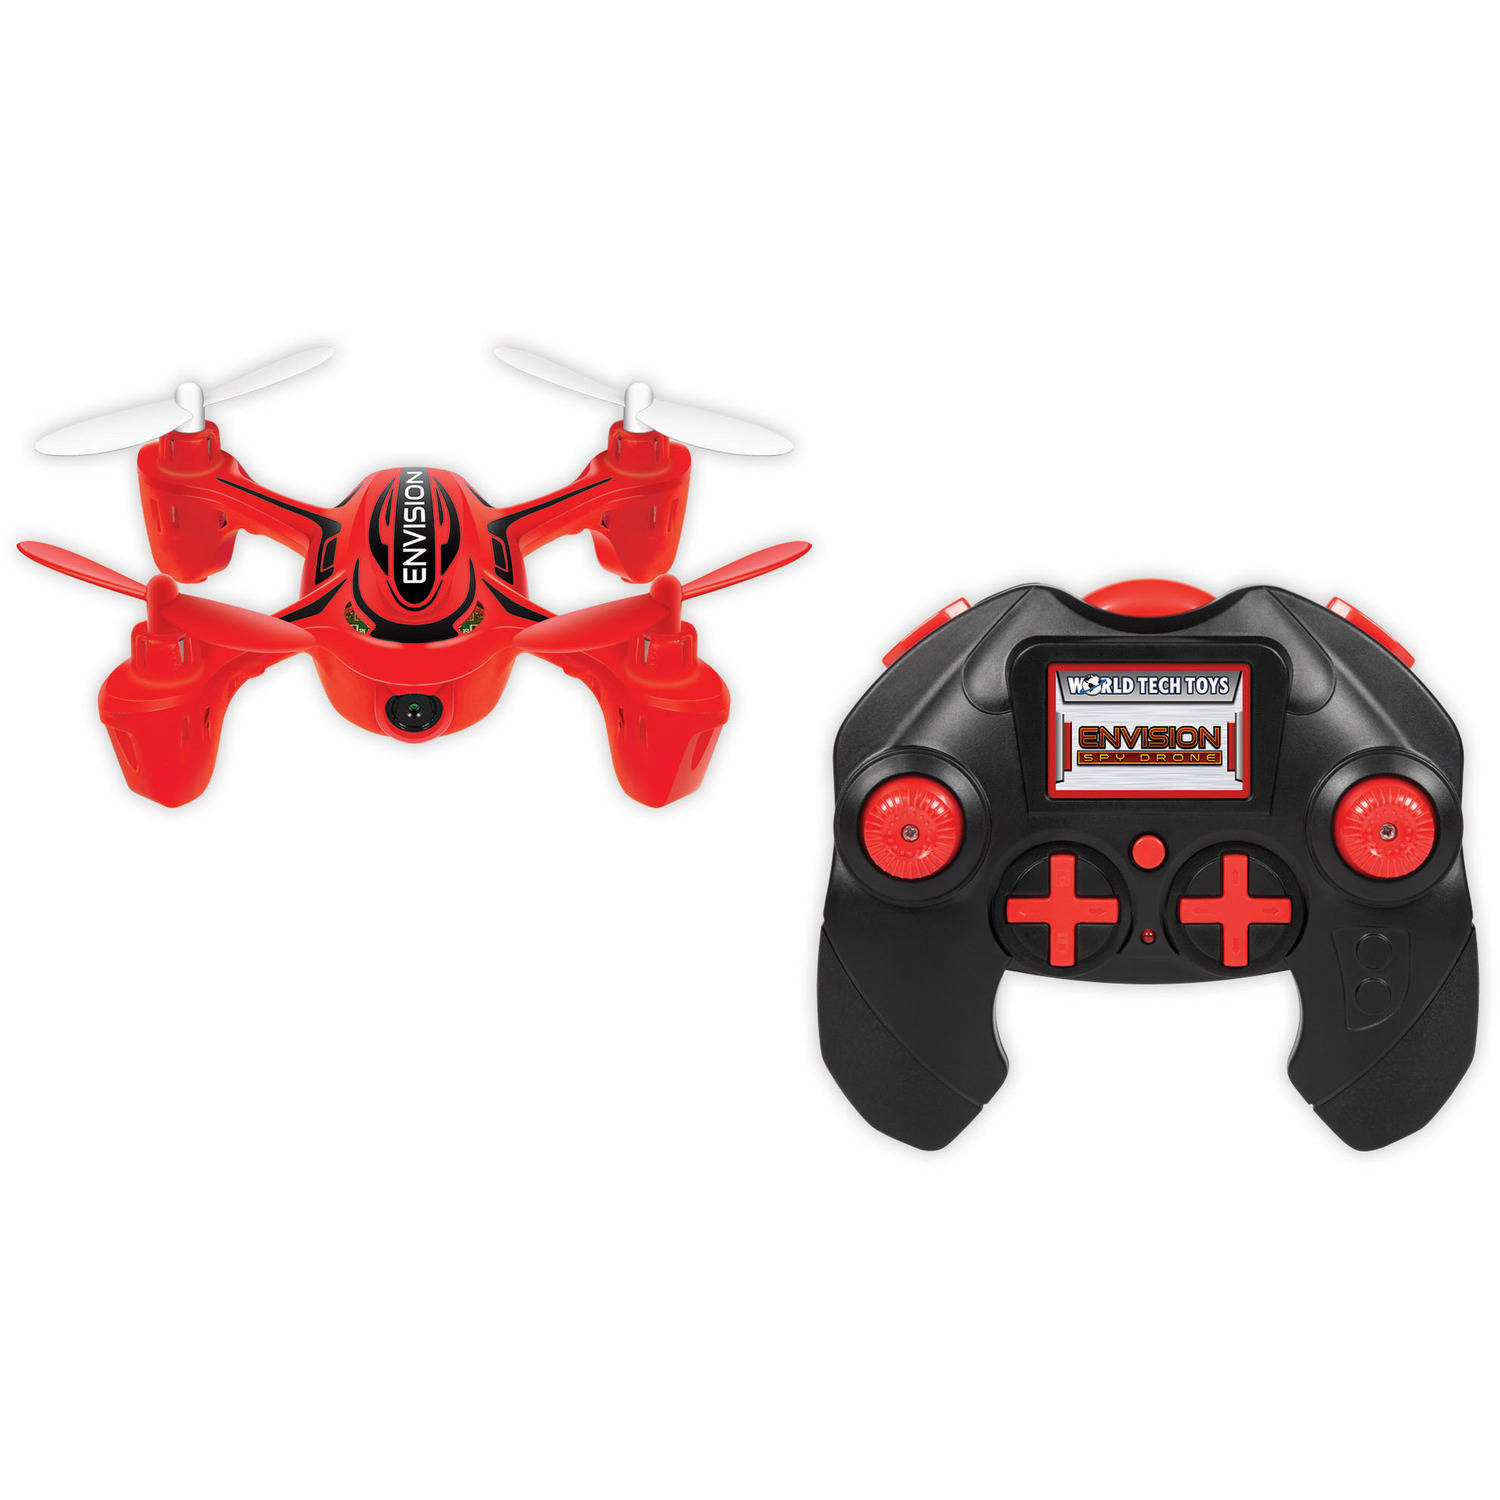 Envision 2.4GHz 4.5-Channel R/C Spy Drone